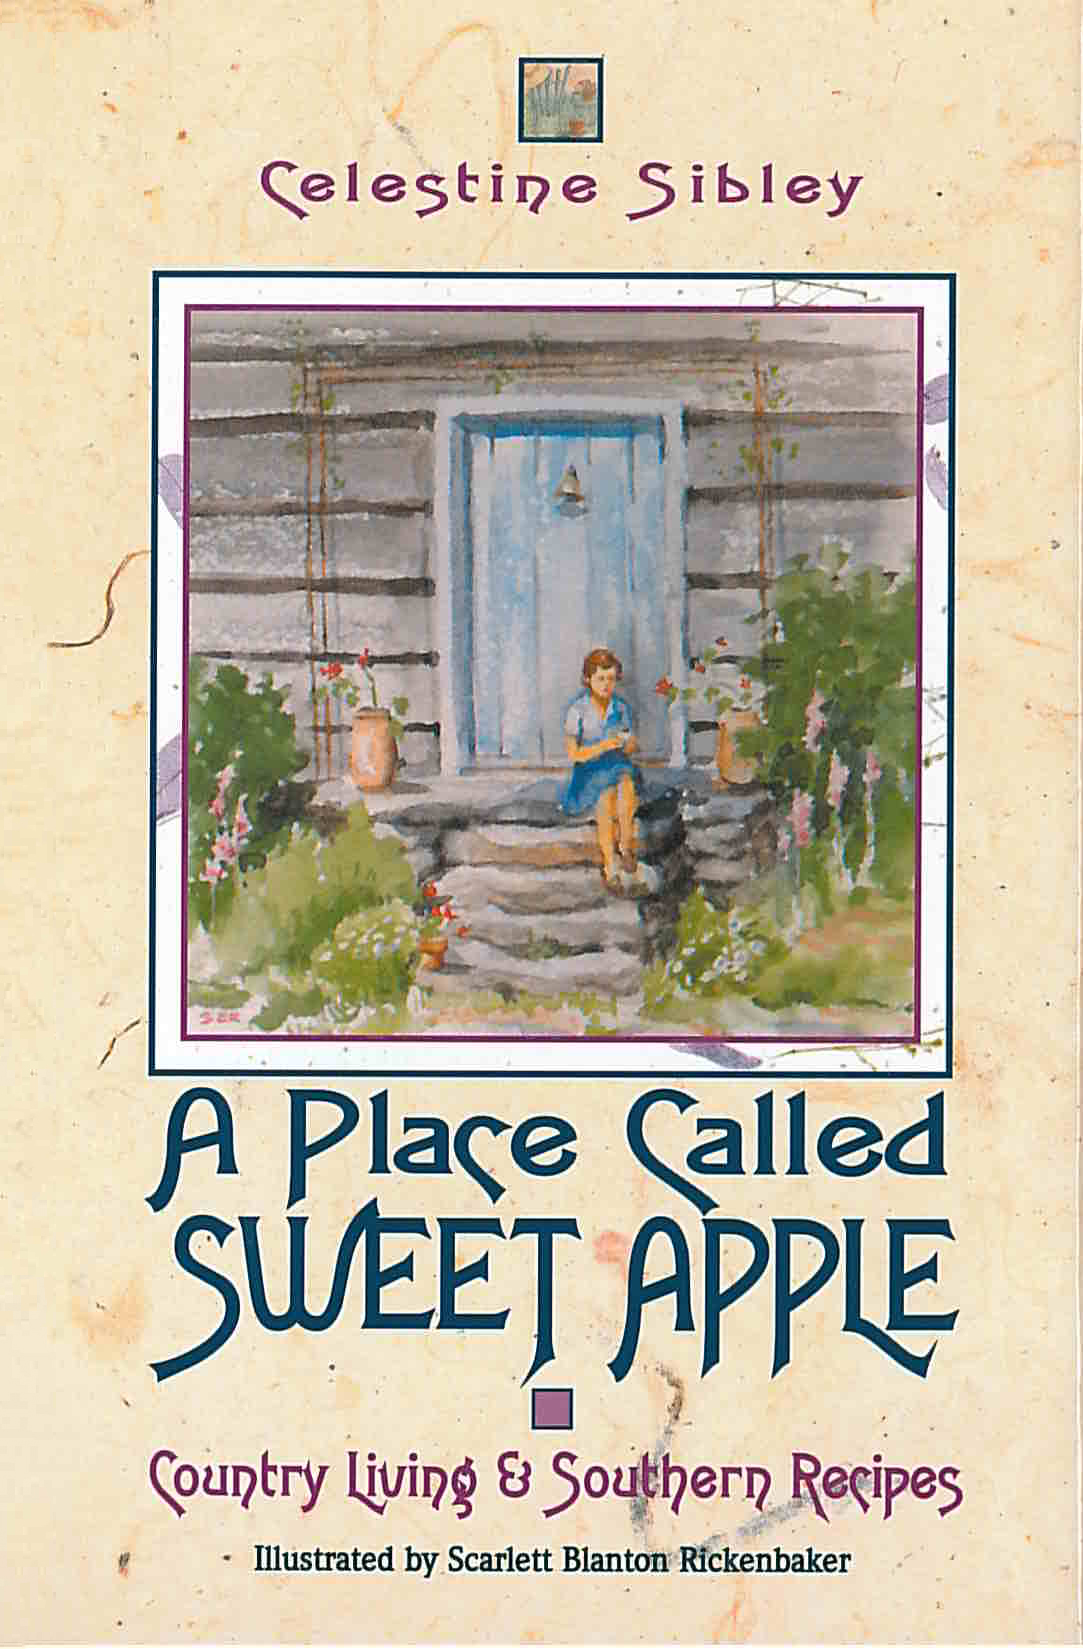 A Place Called Sweet Apple